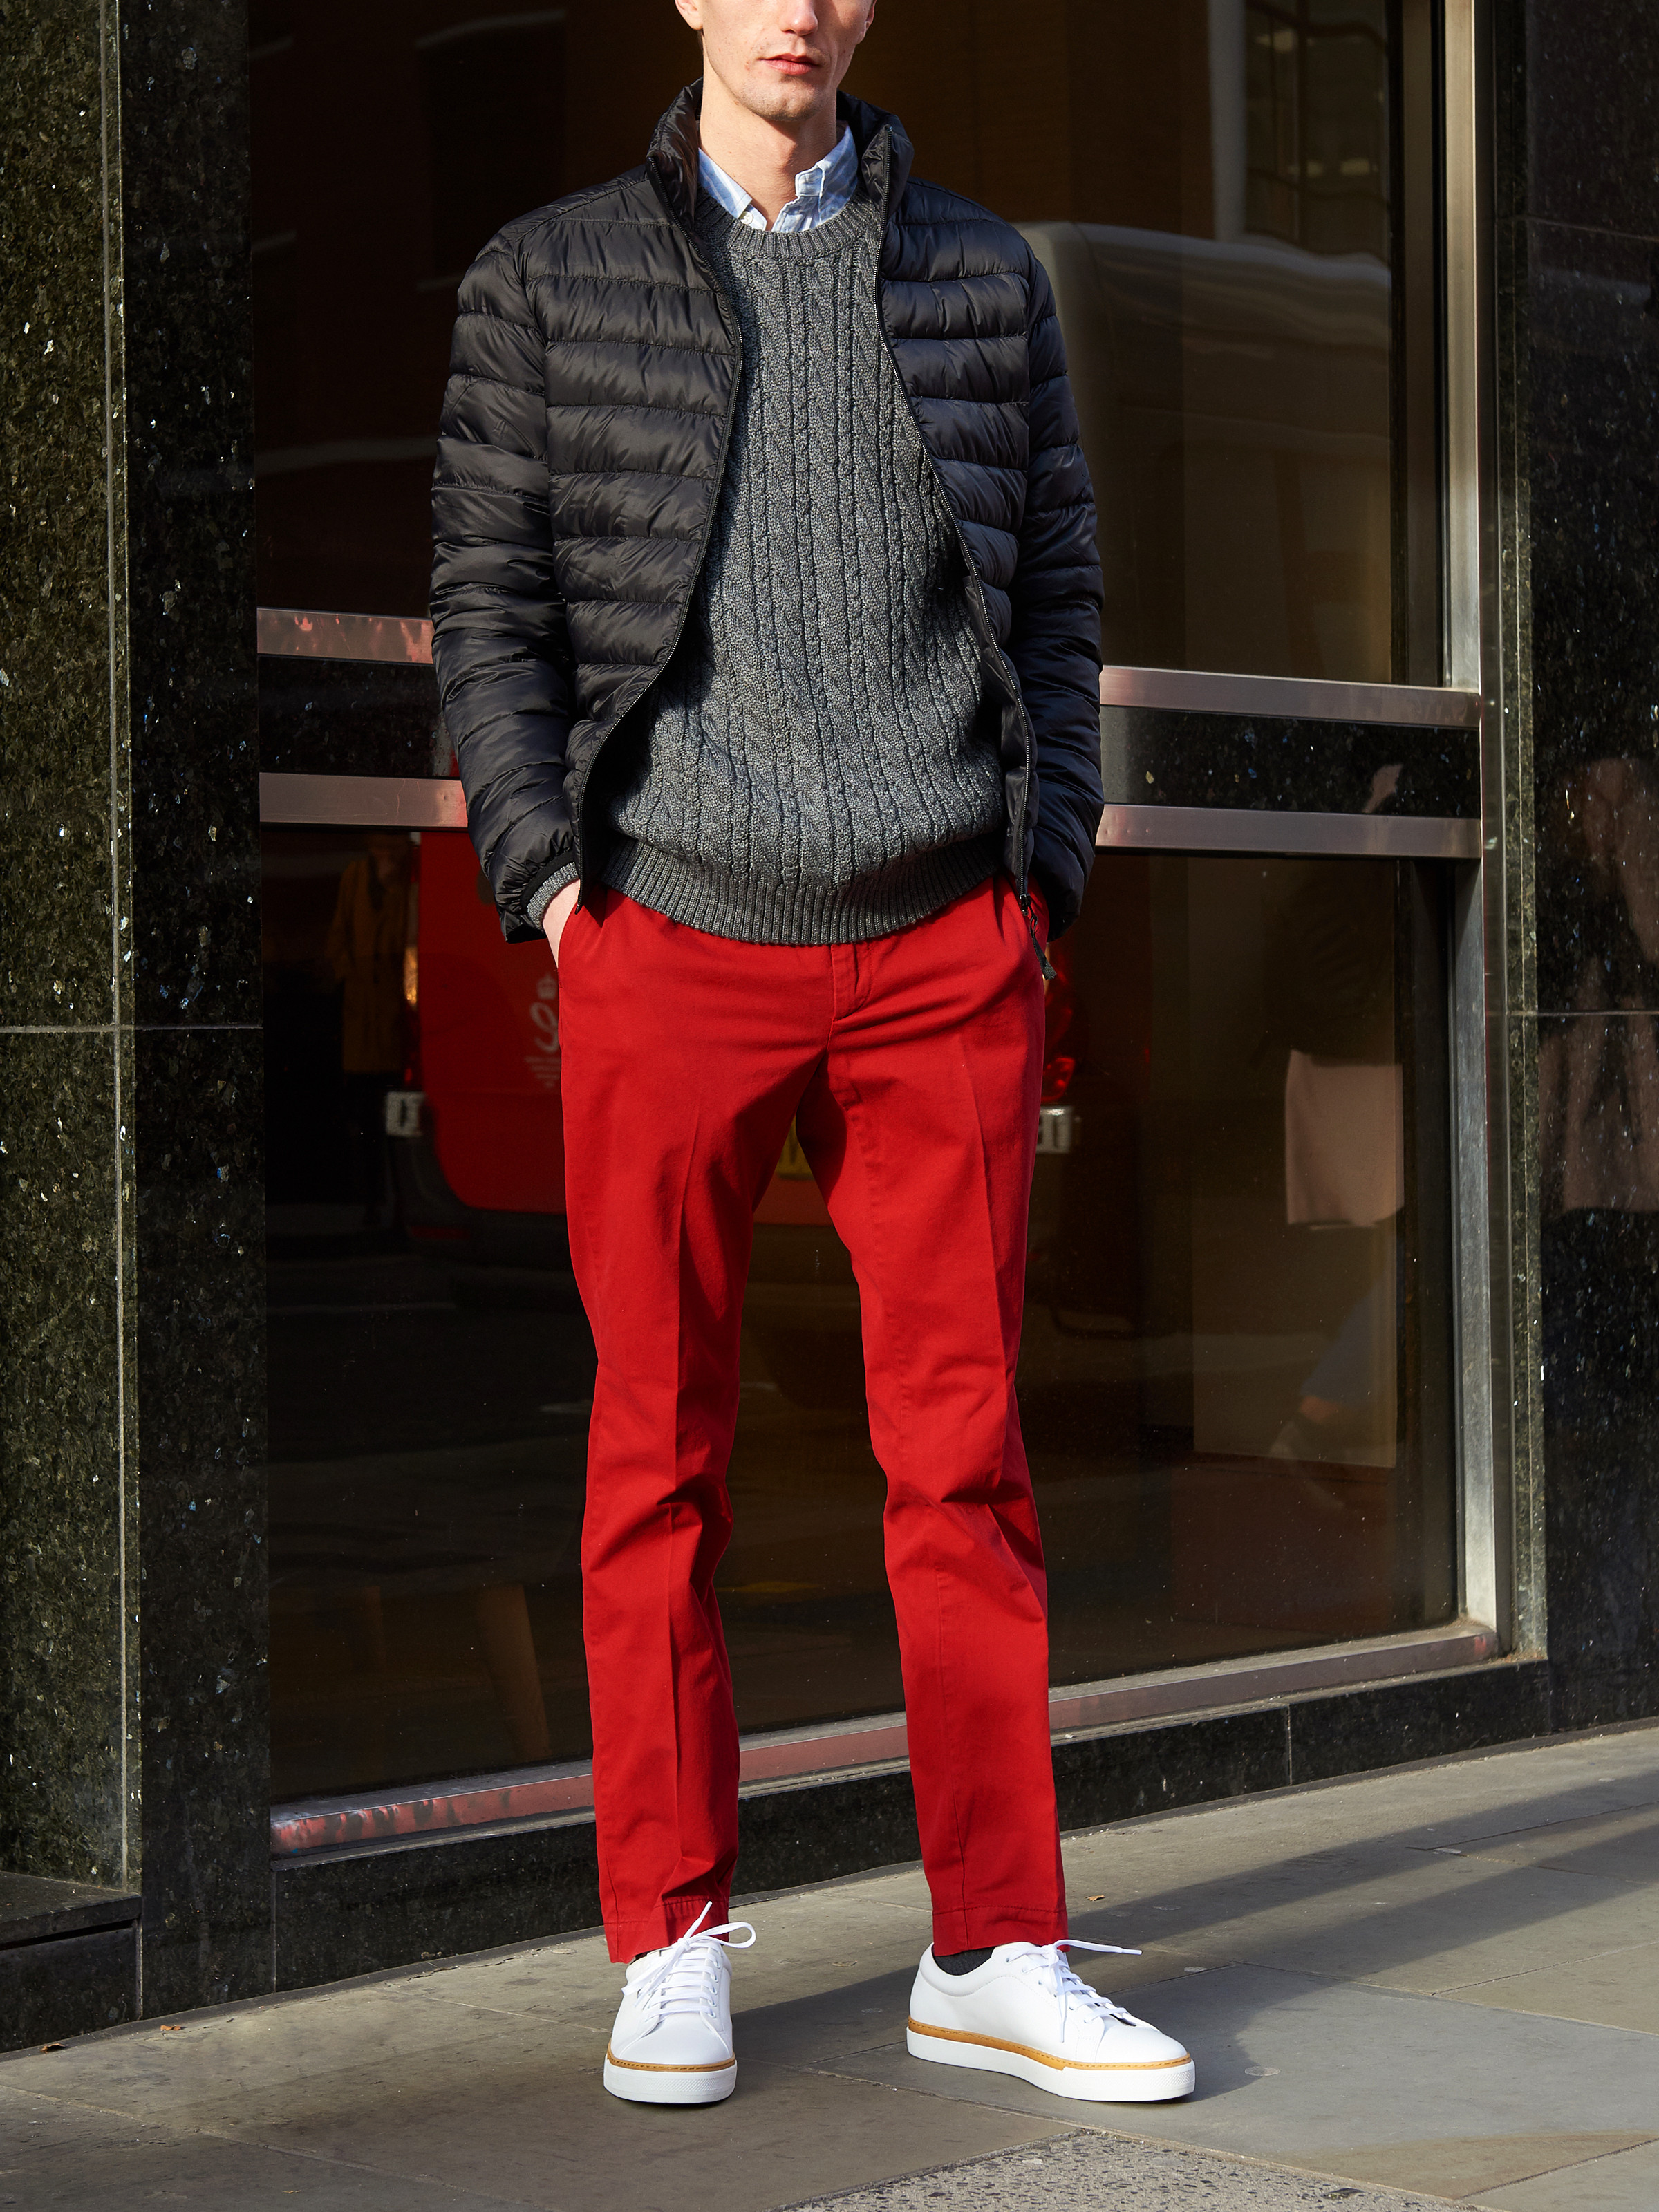 Men's outfit idea for 2021 with quilted jacket, cable-knit sweater, striped casual shirt, red chinos, white sneakers. Suitable for fall and winter.